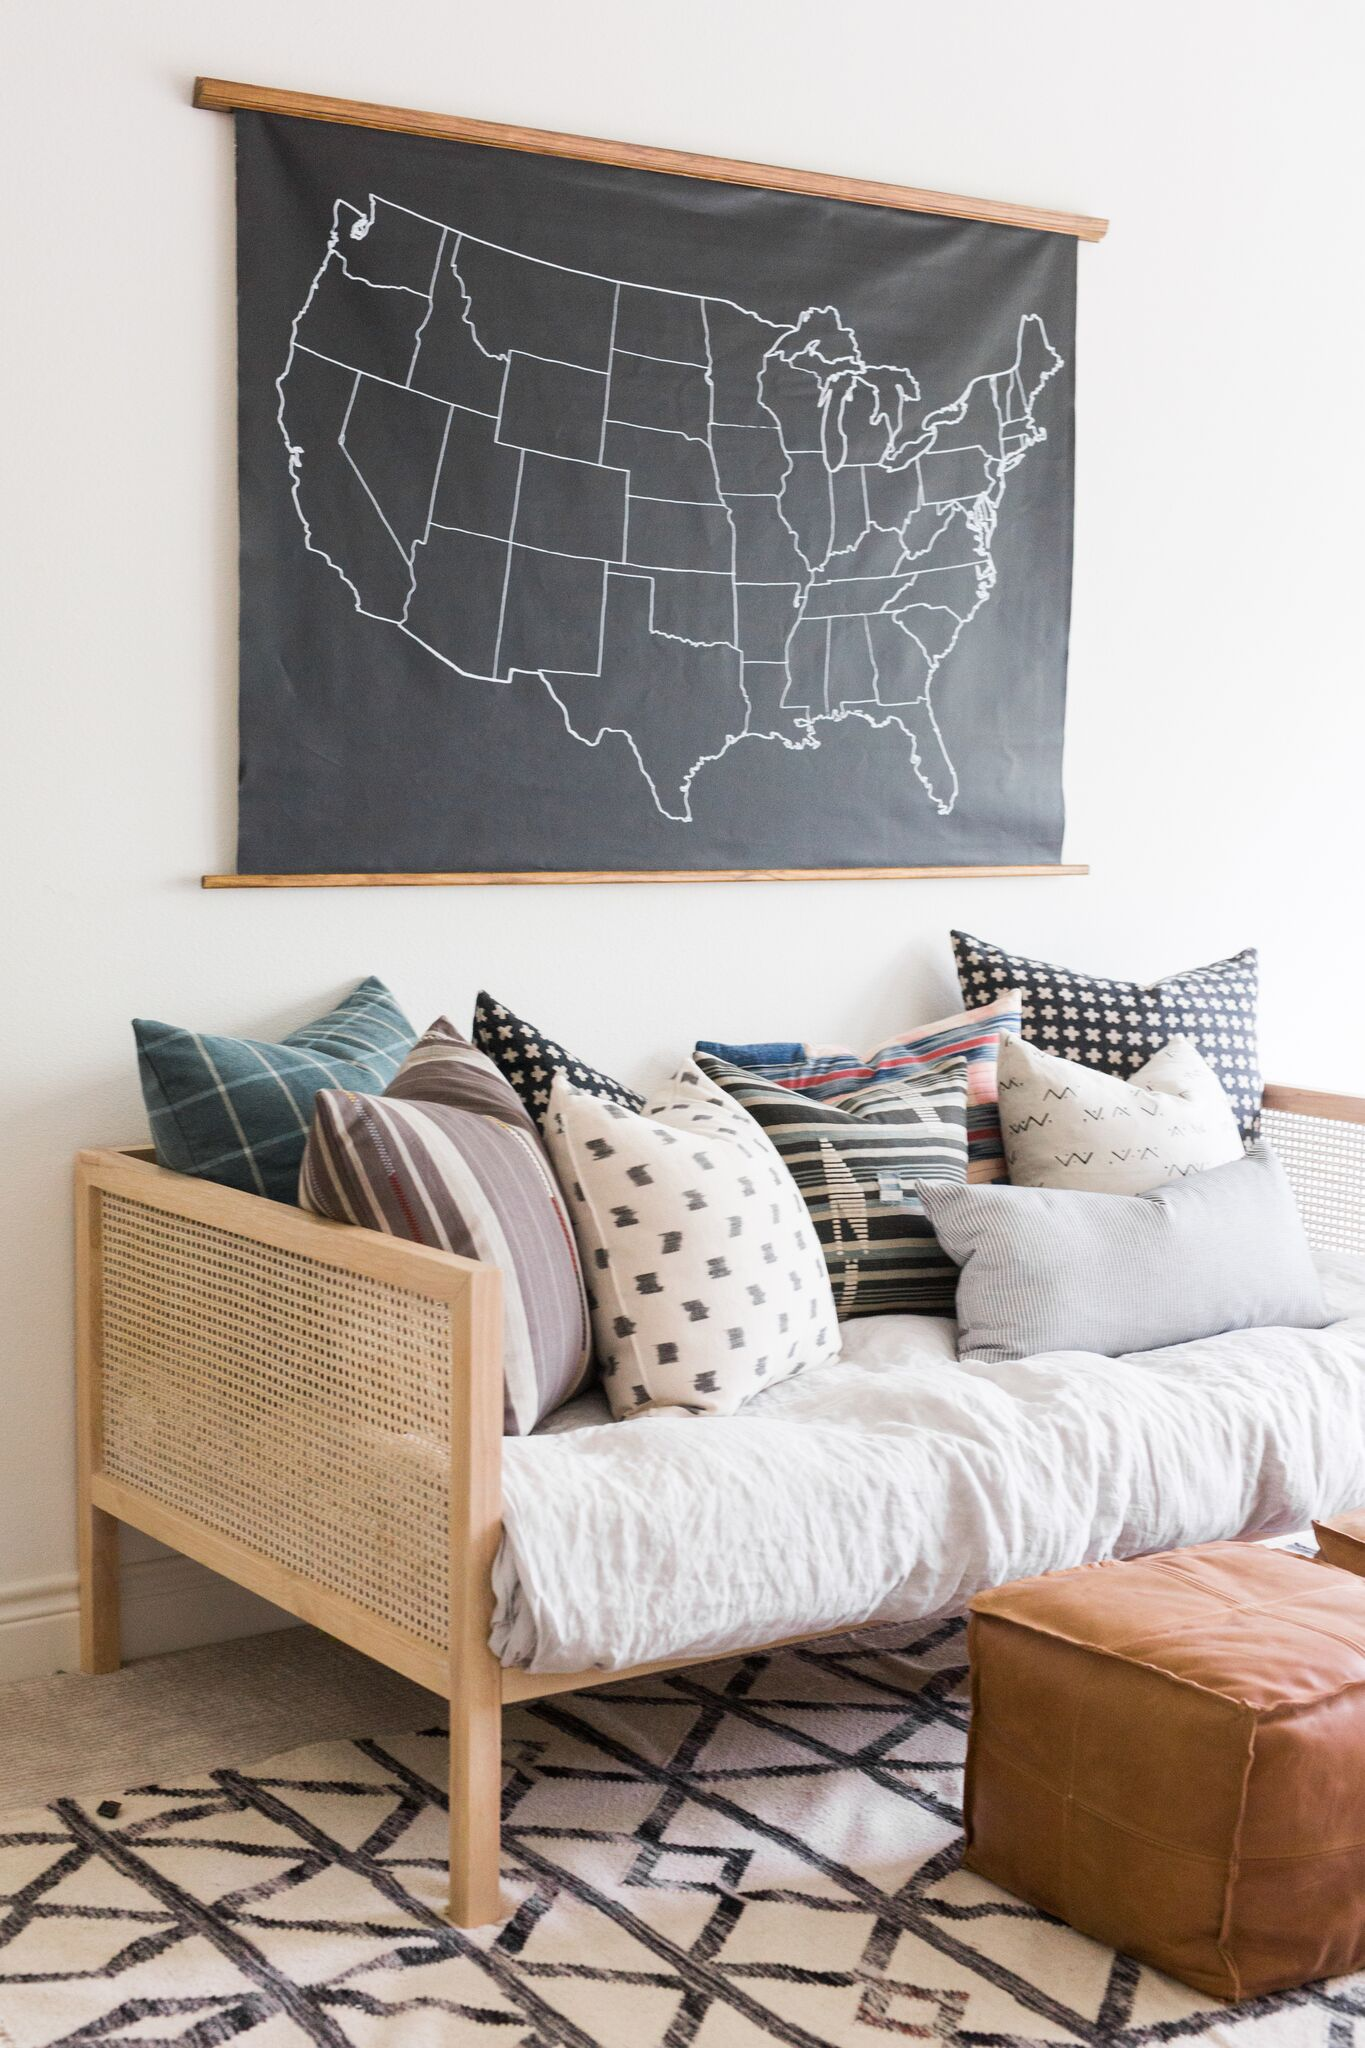 20Coastal+Bohemian+Kids'+Playroom+Featuring+a+Daybed+with+Eclectic+Throw+Pillows.jpg